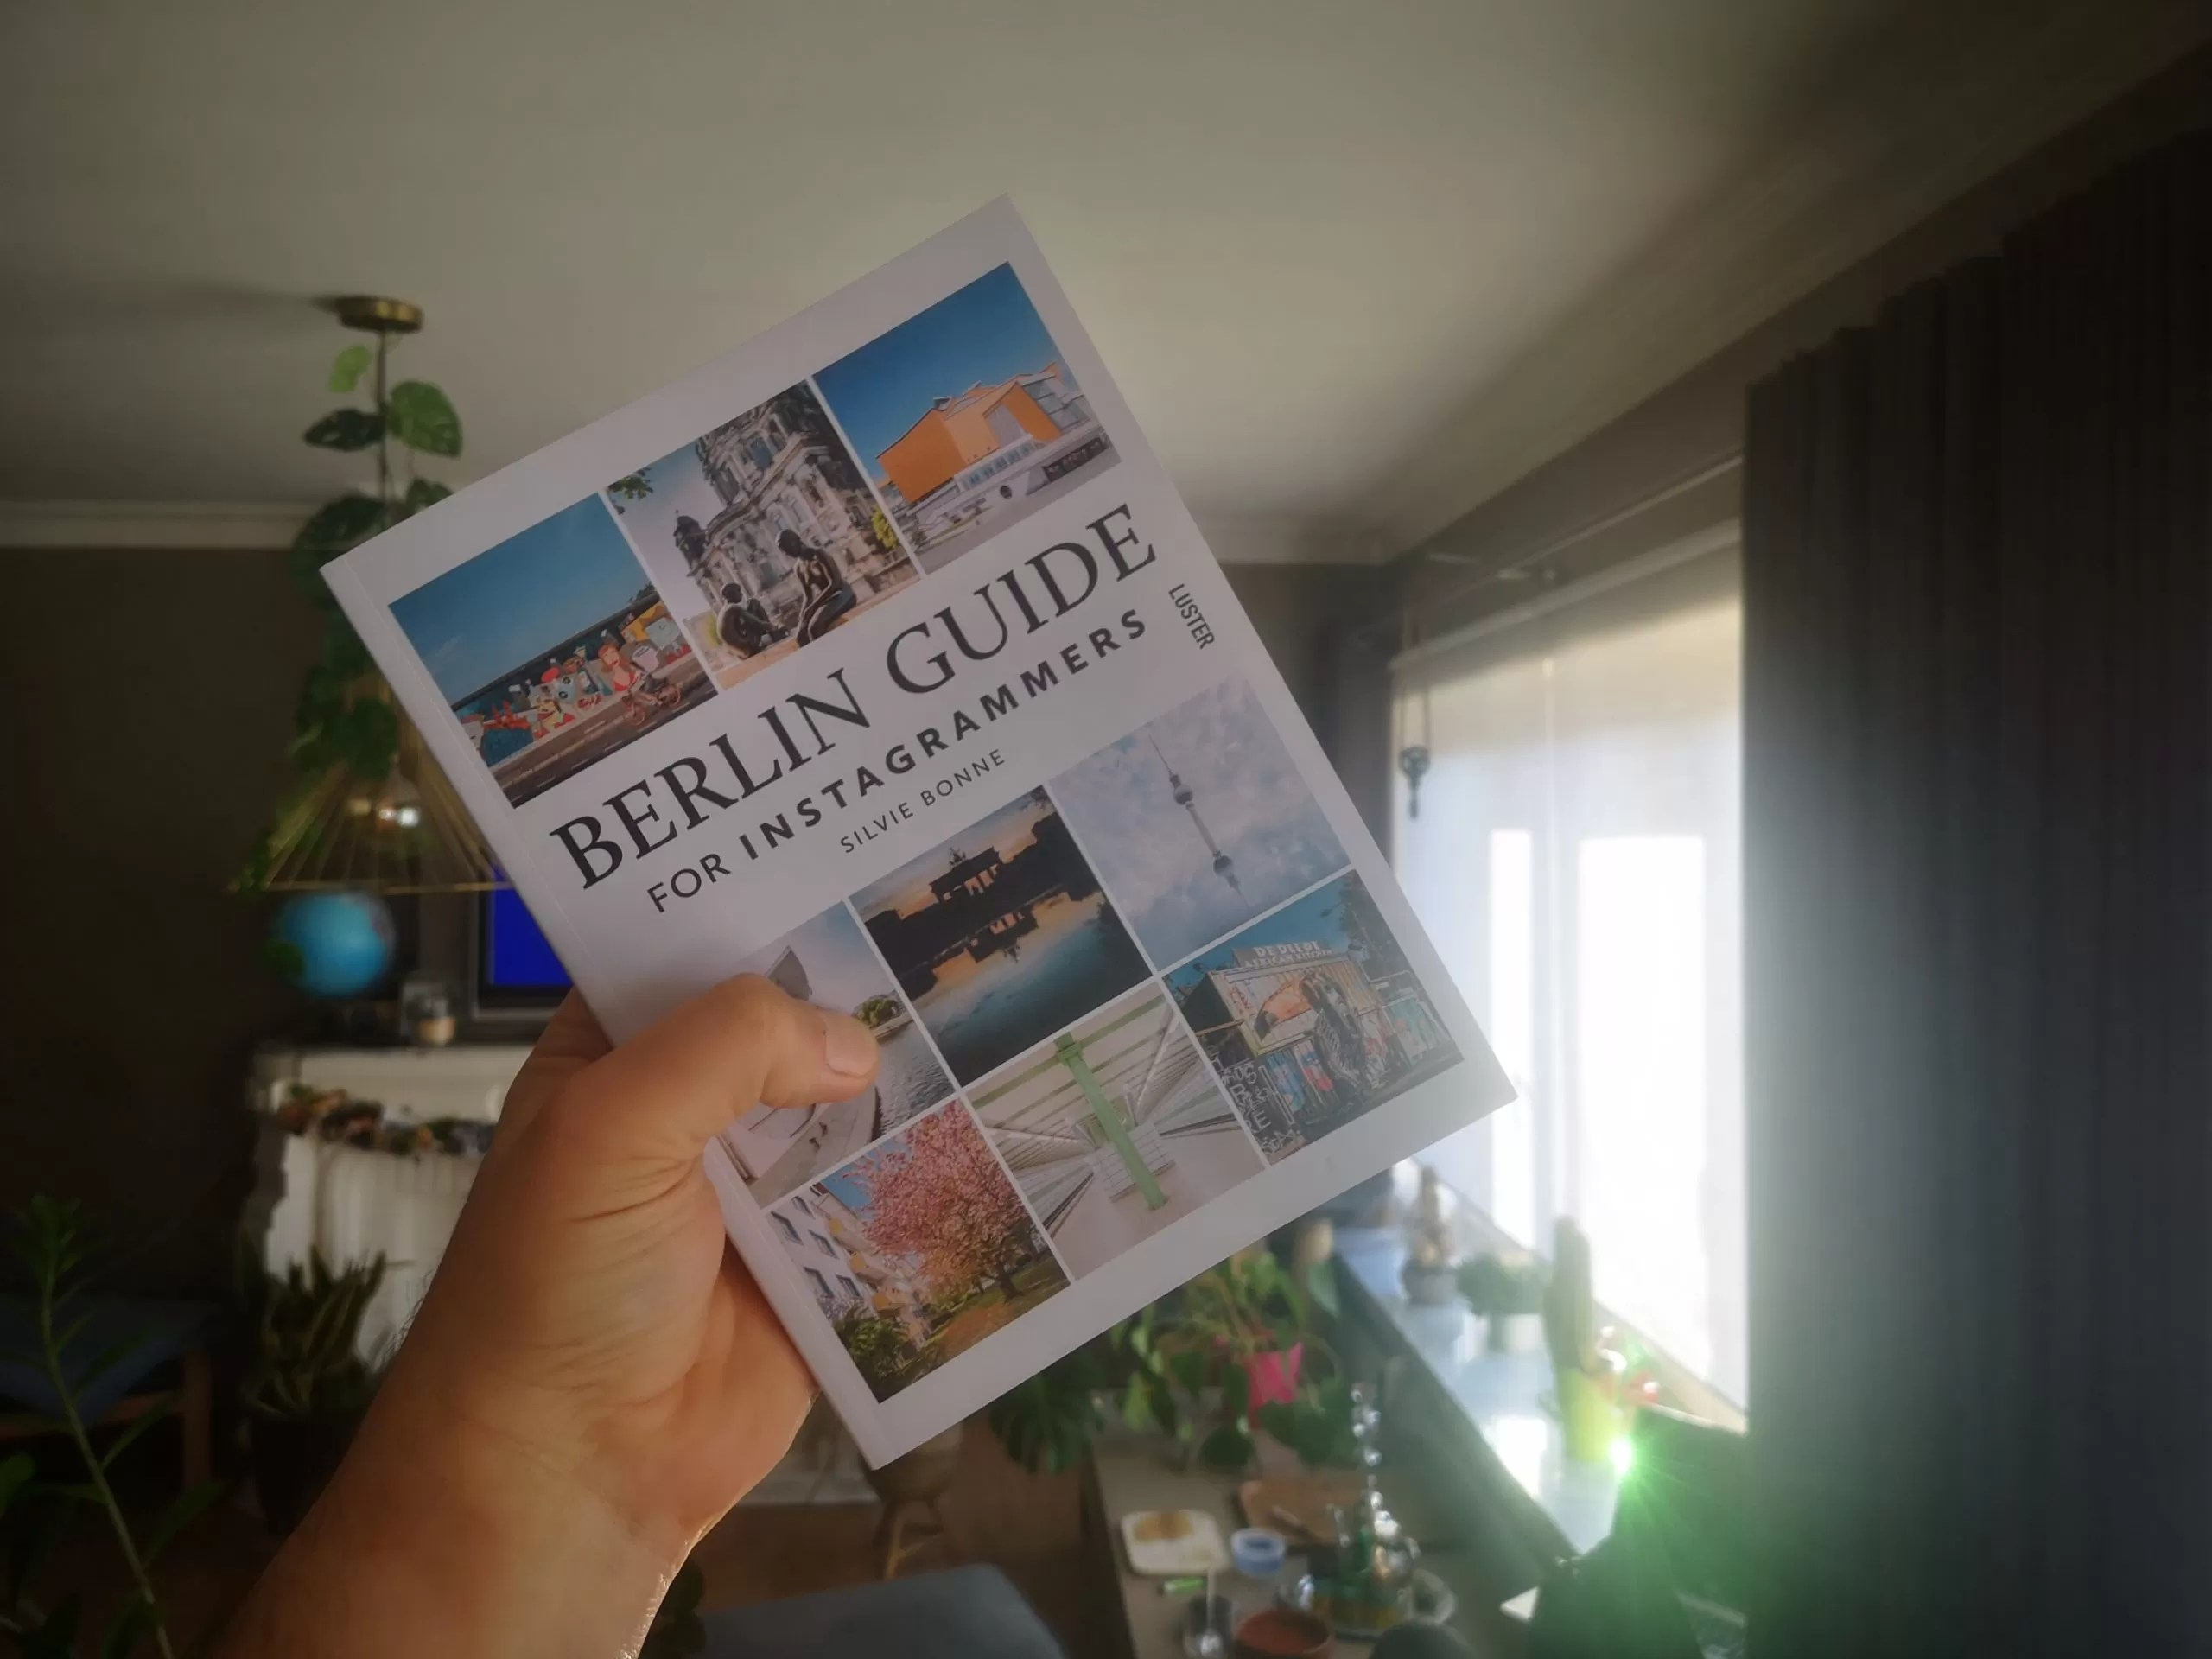 Berlin Guide for Instagrammers (review)